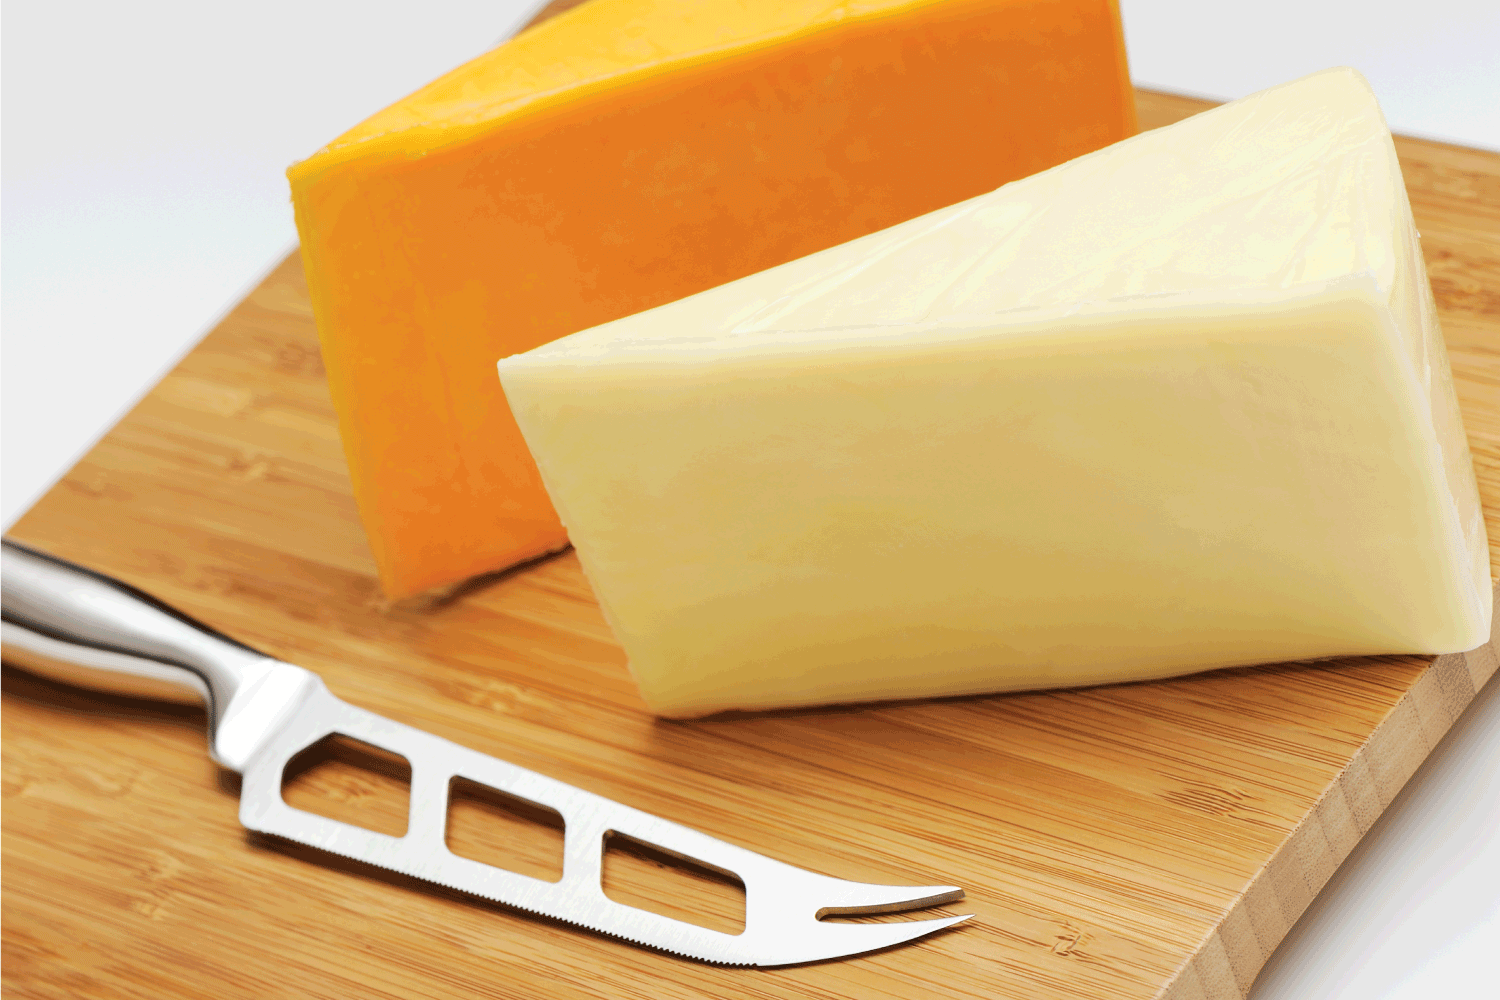 Two pieces of cheddar cheese (white and yellow) on a cutting board with cheese knife.